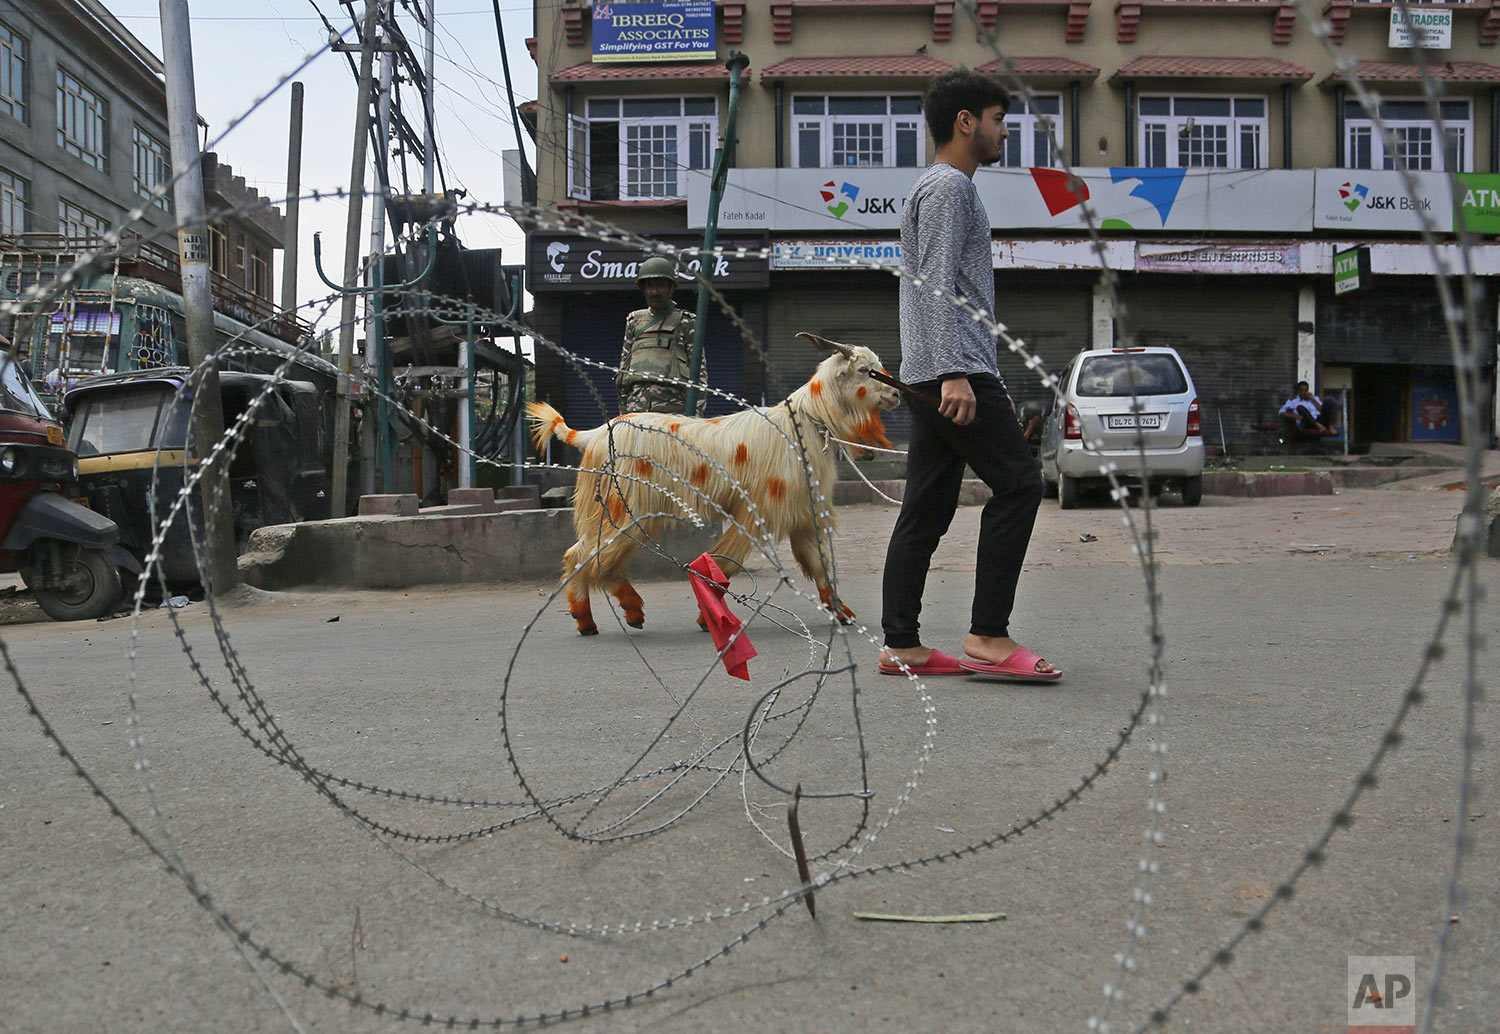 A Kashmiri Muslim civilian crosses a check point ahead of Eid -ul Adha during curfew in Srinagar, Indian controlled Kashmiri, Friday, Aug. 9, 2019. (AP Photo/Mukhtar Khan)